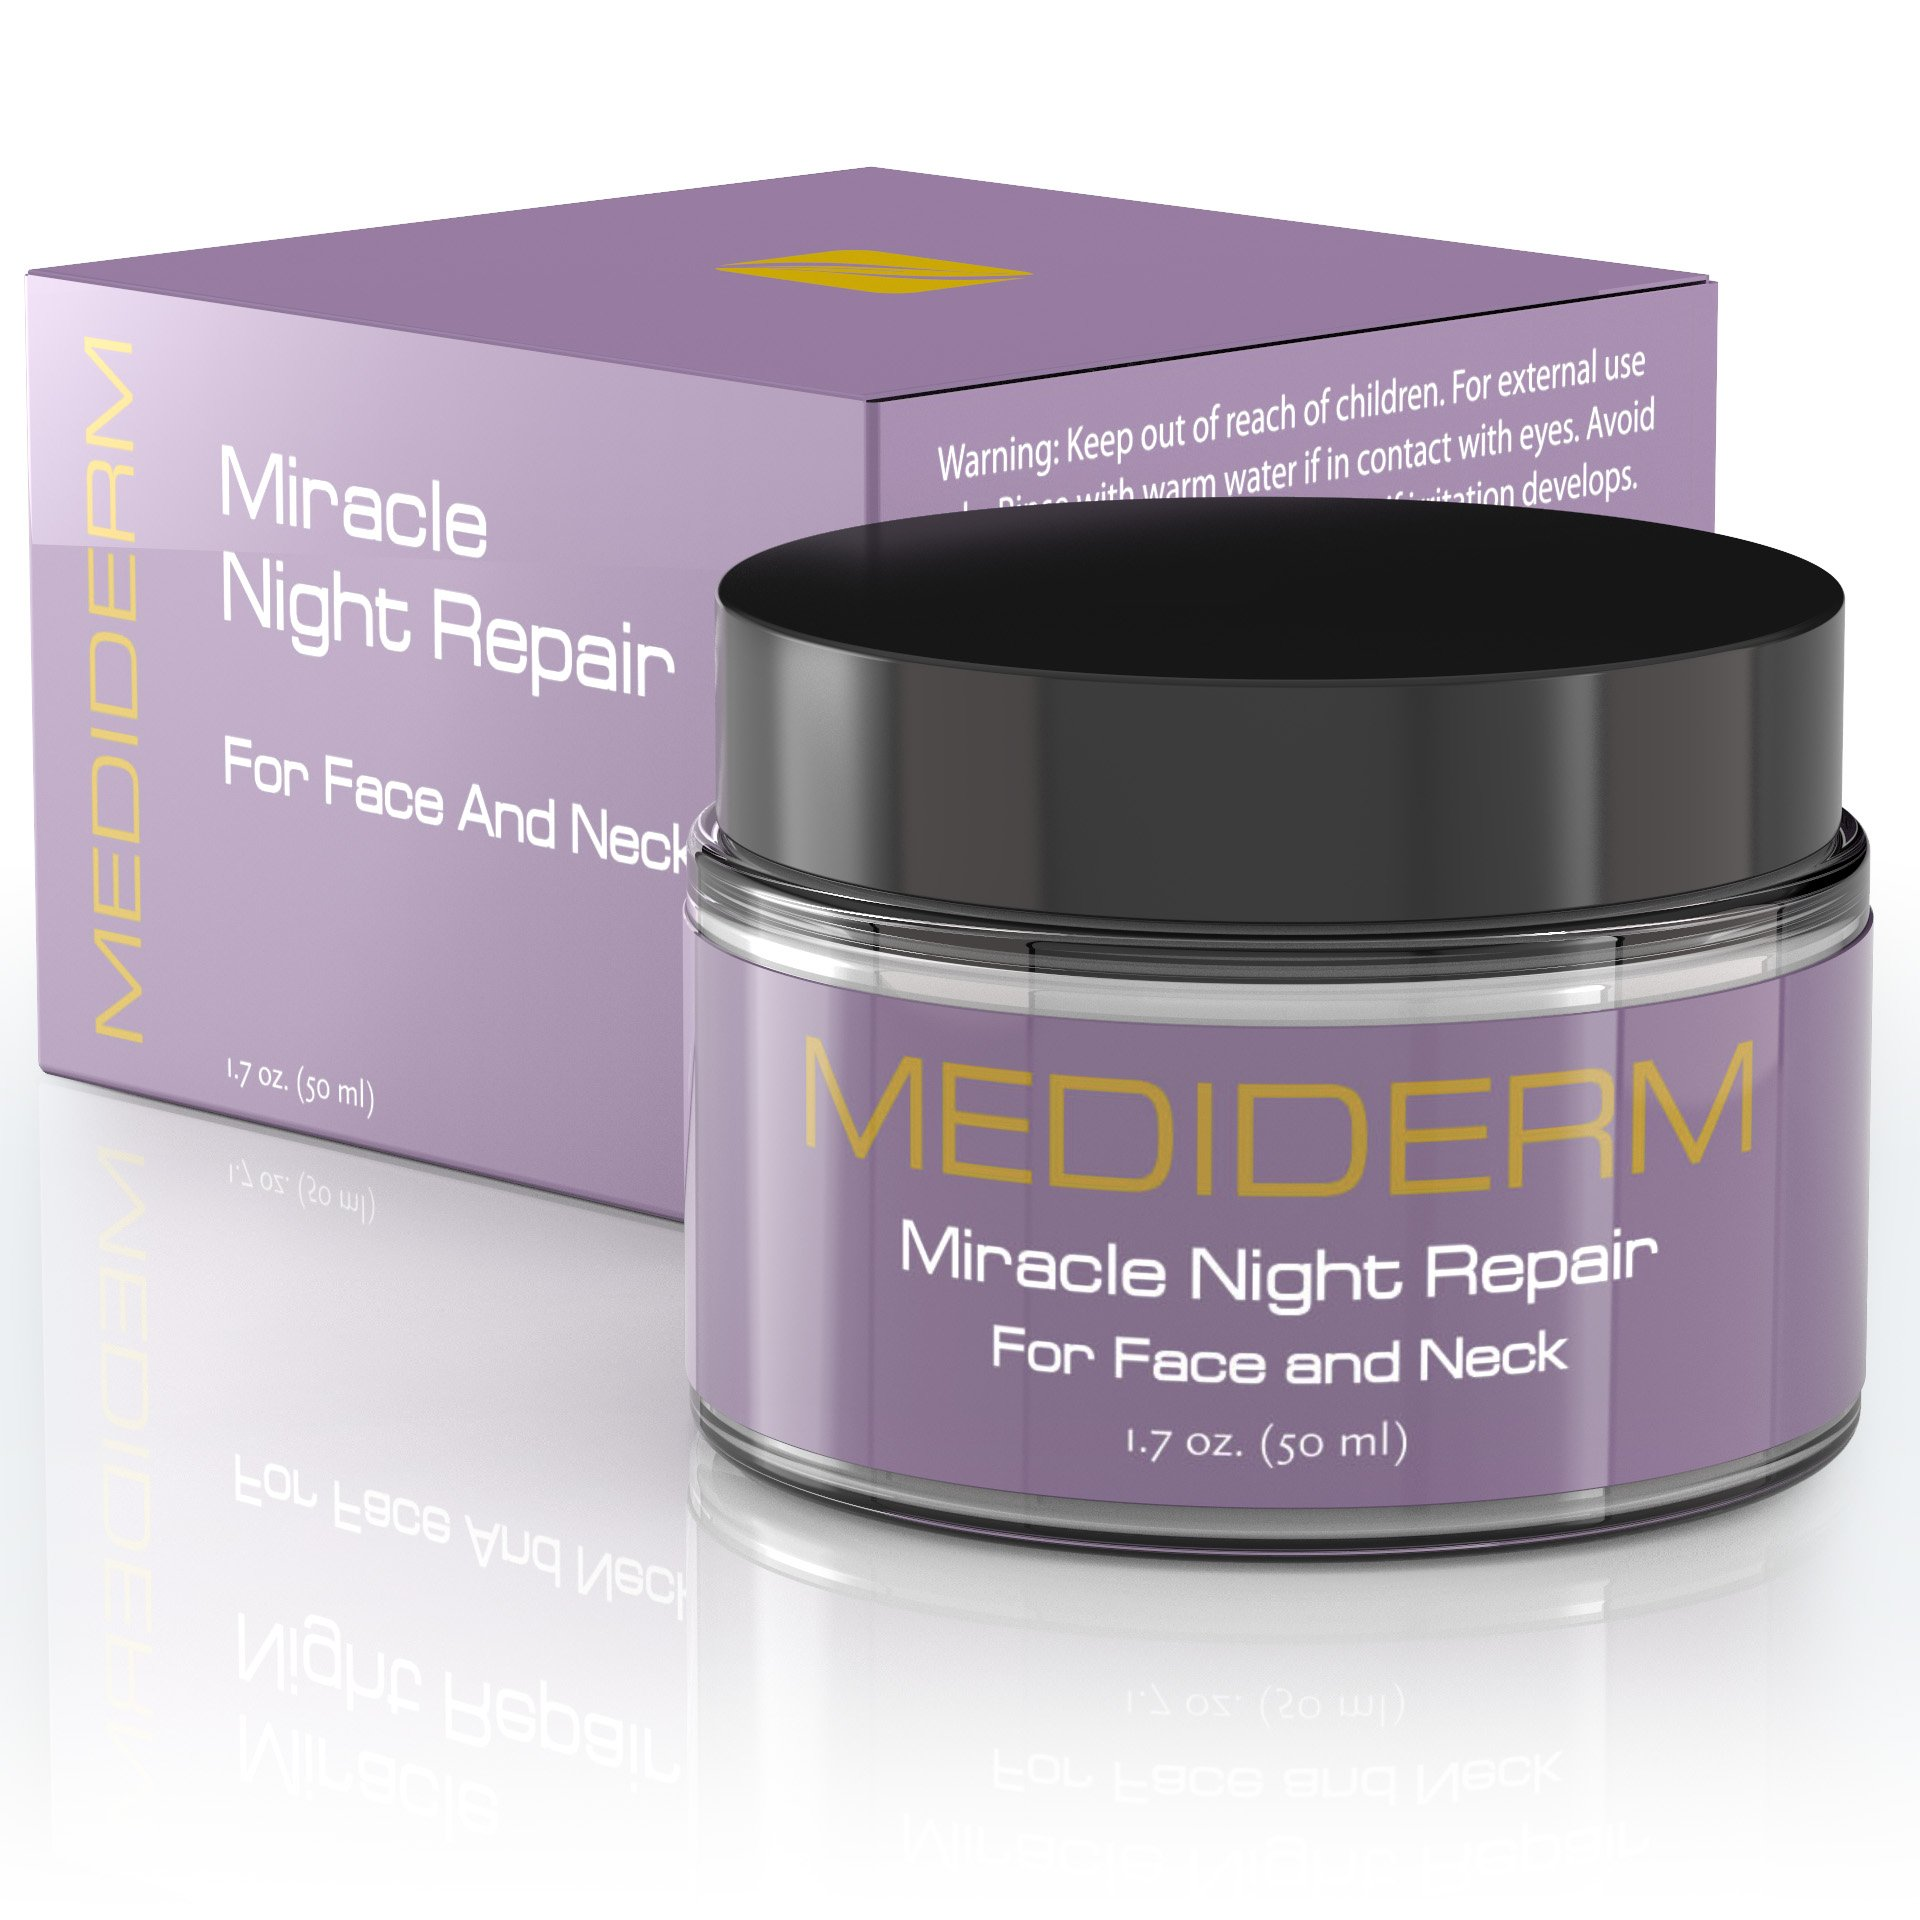 Miracle Night Repair Cream - Best Anti Aging Moisturizer and Anti Wrinkle Cream with Hyaluronic Acid, Vitamin C, Marine Collagen. Daily Moisturizing Treatment for Men and Women